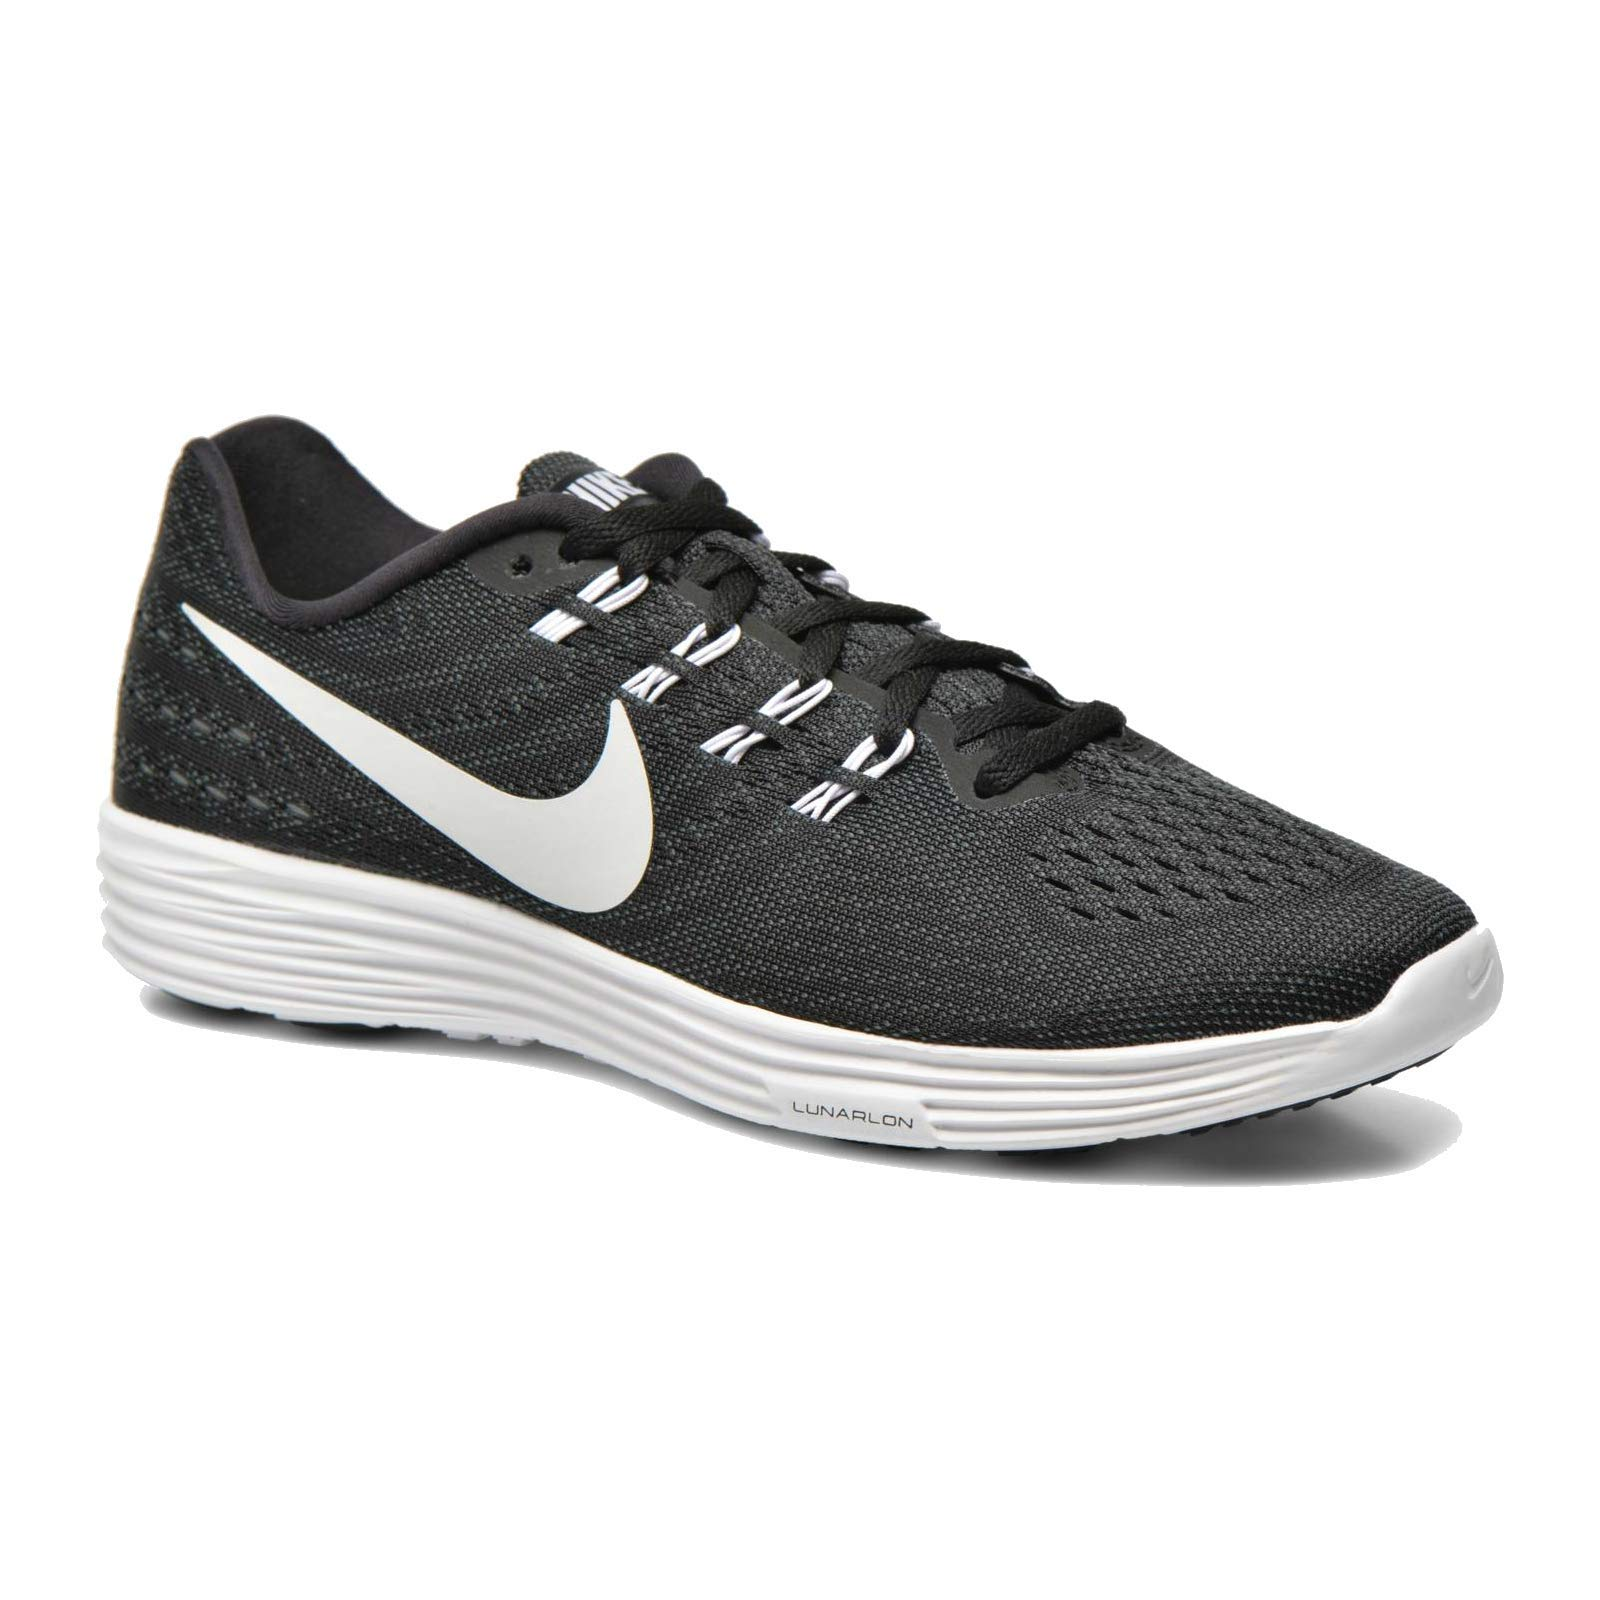 best sneakers a1912 dc7f5 Galleon - Nike Womens Lunartempo 2 Black White Anthracite Running Shoe 6  Women US